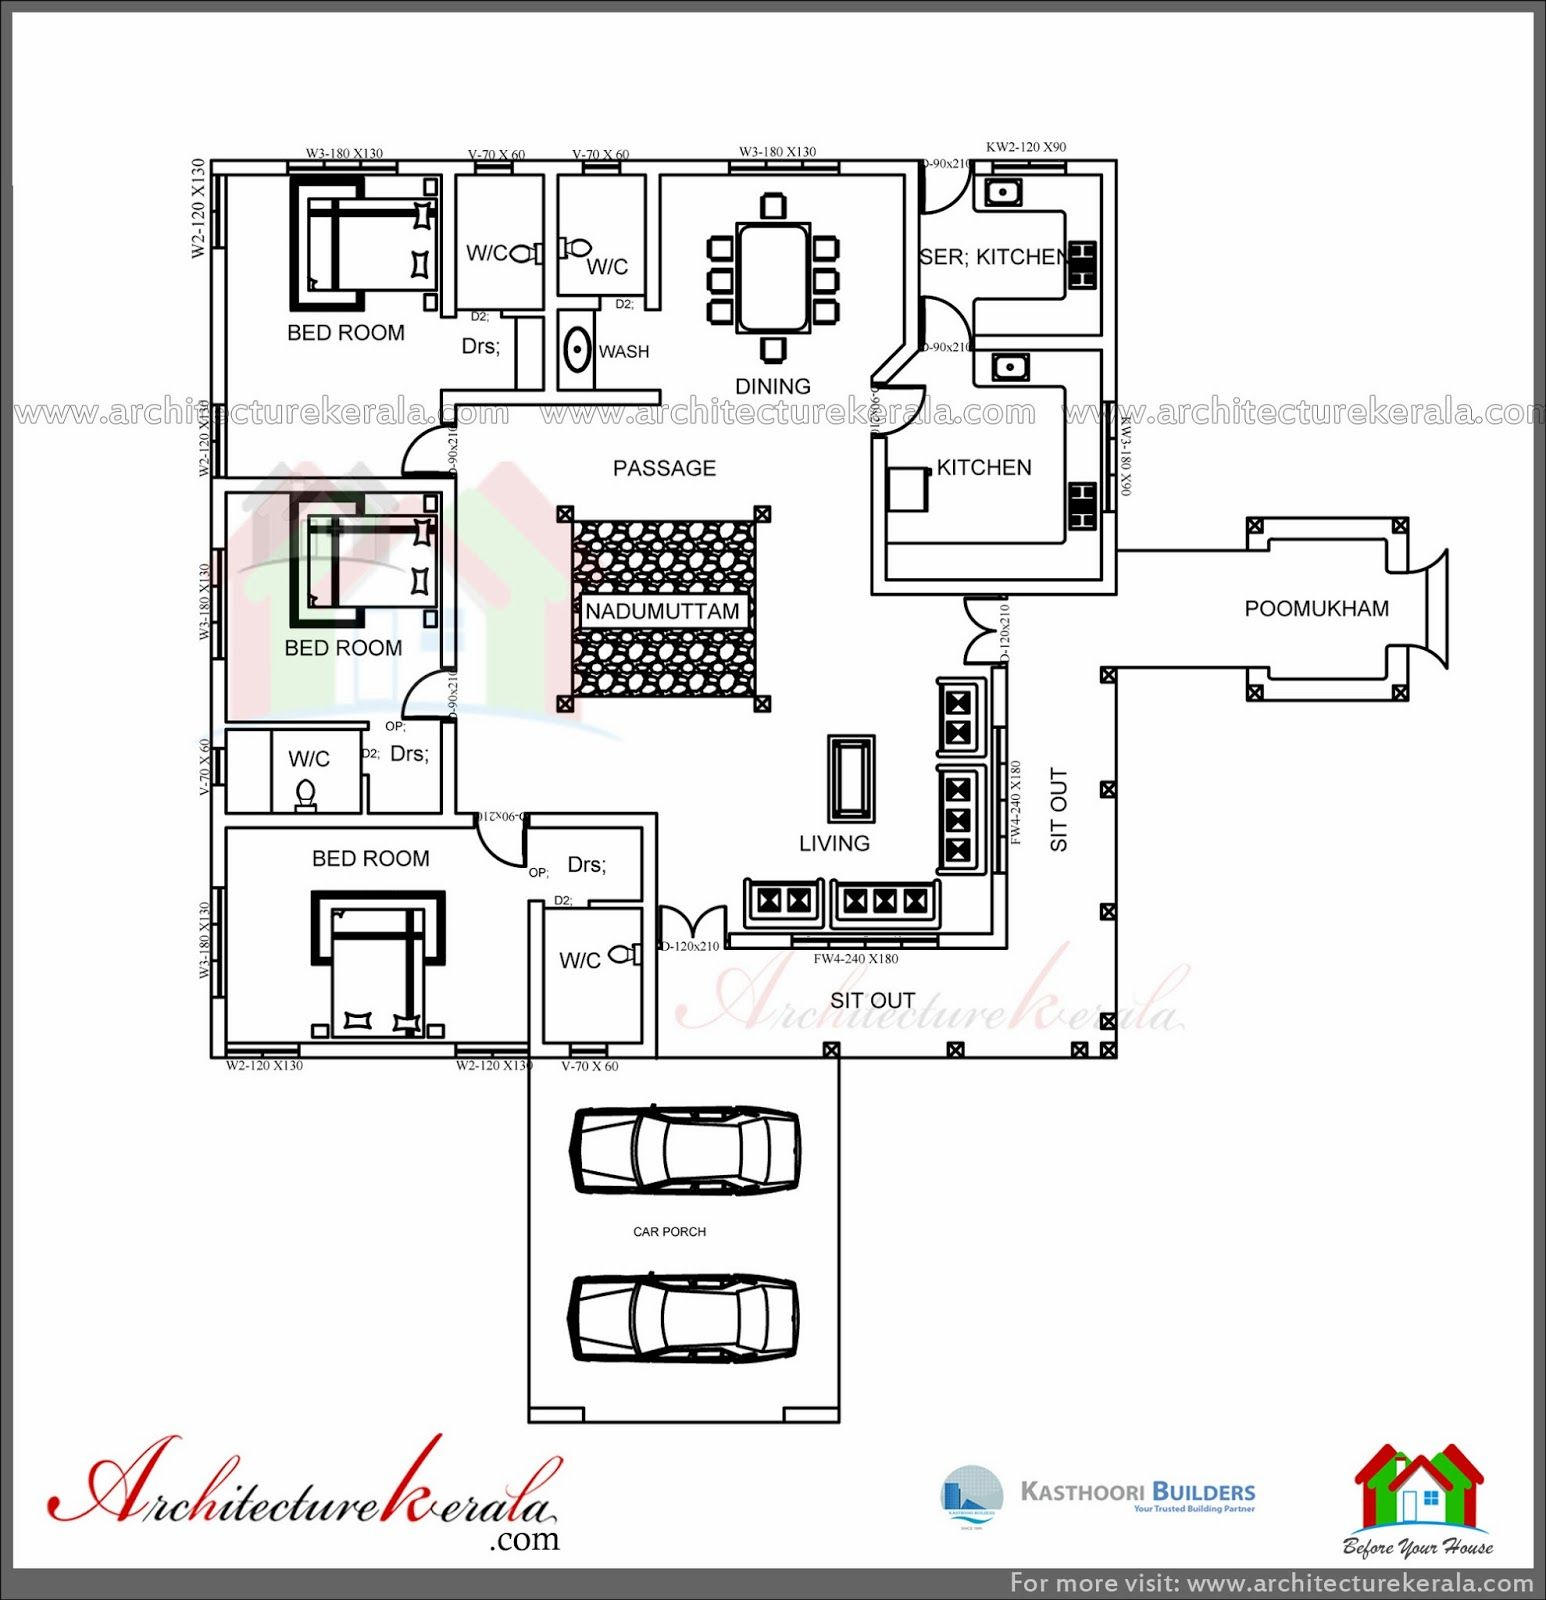 Architecture kerala traditional house plan with for Kerala traditional home plans with photos